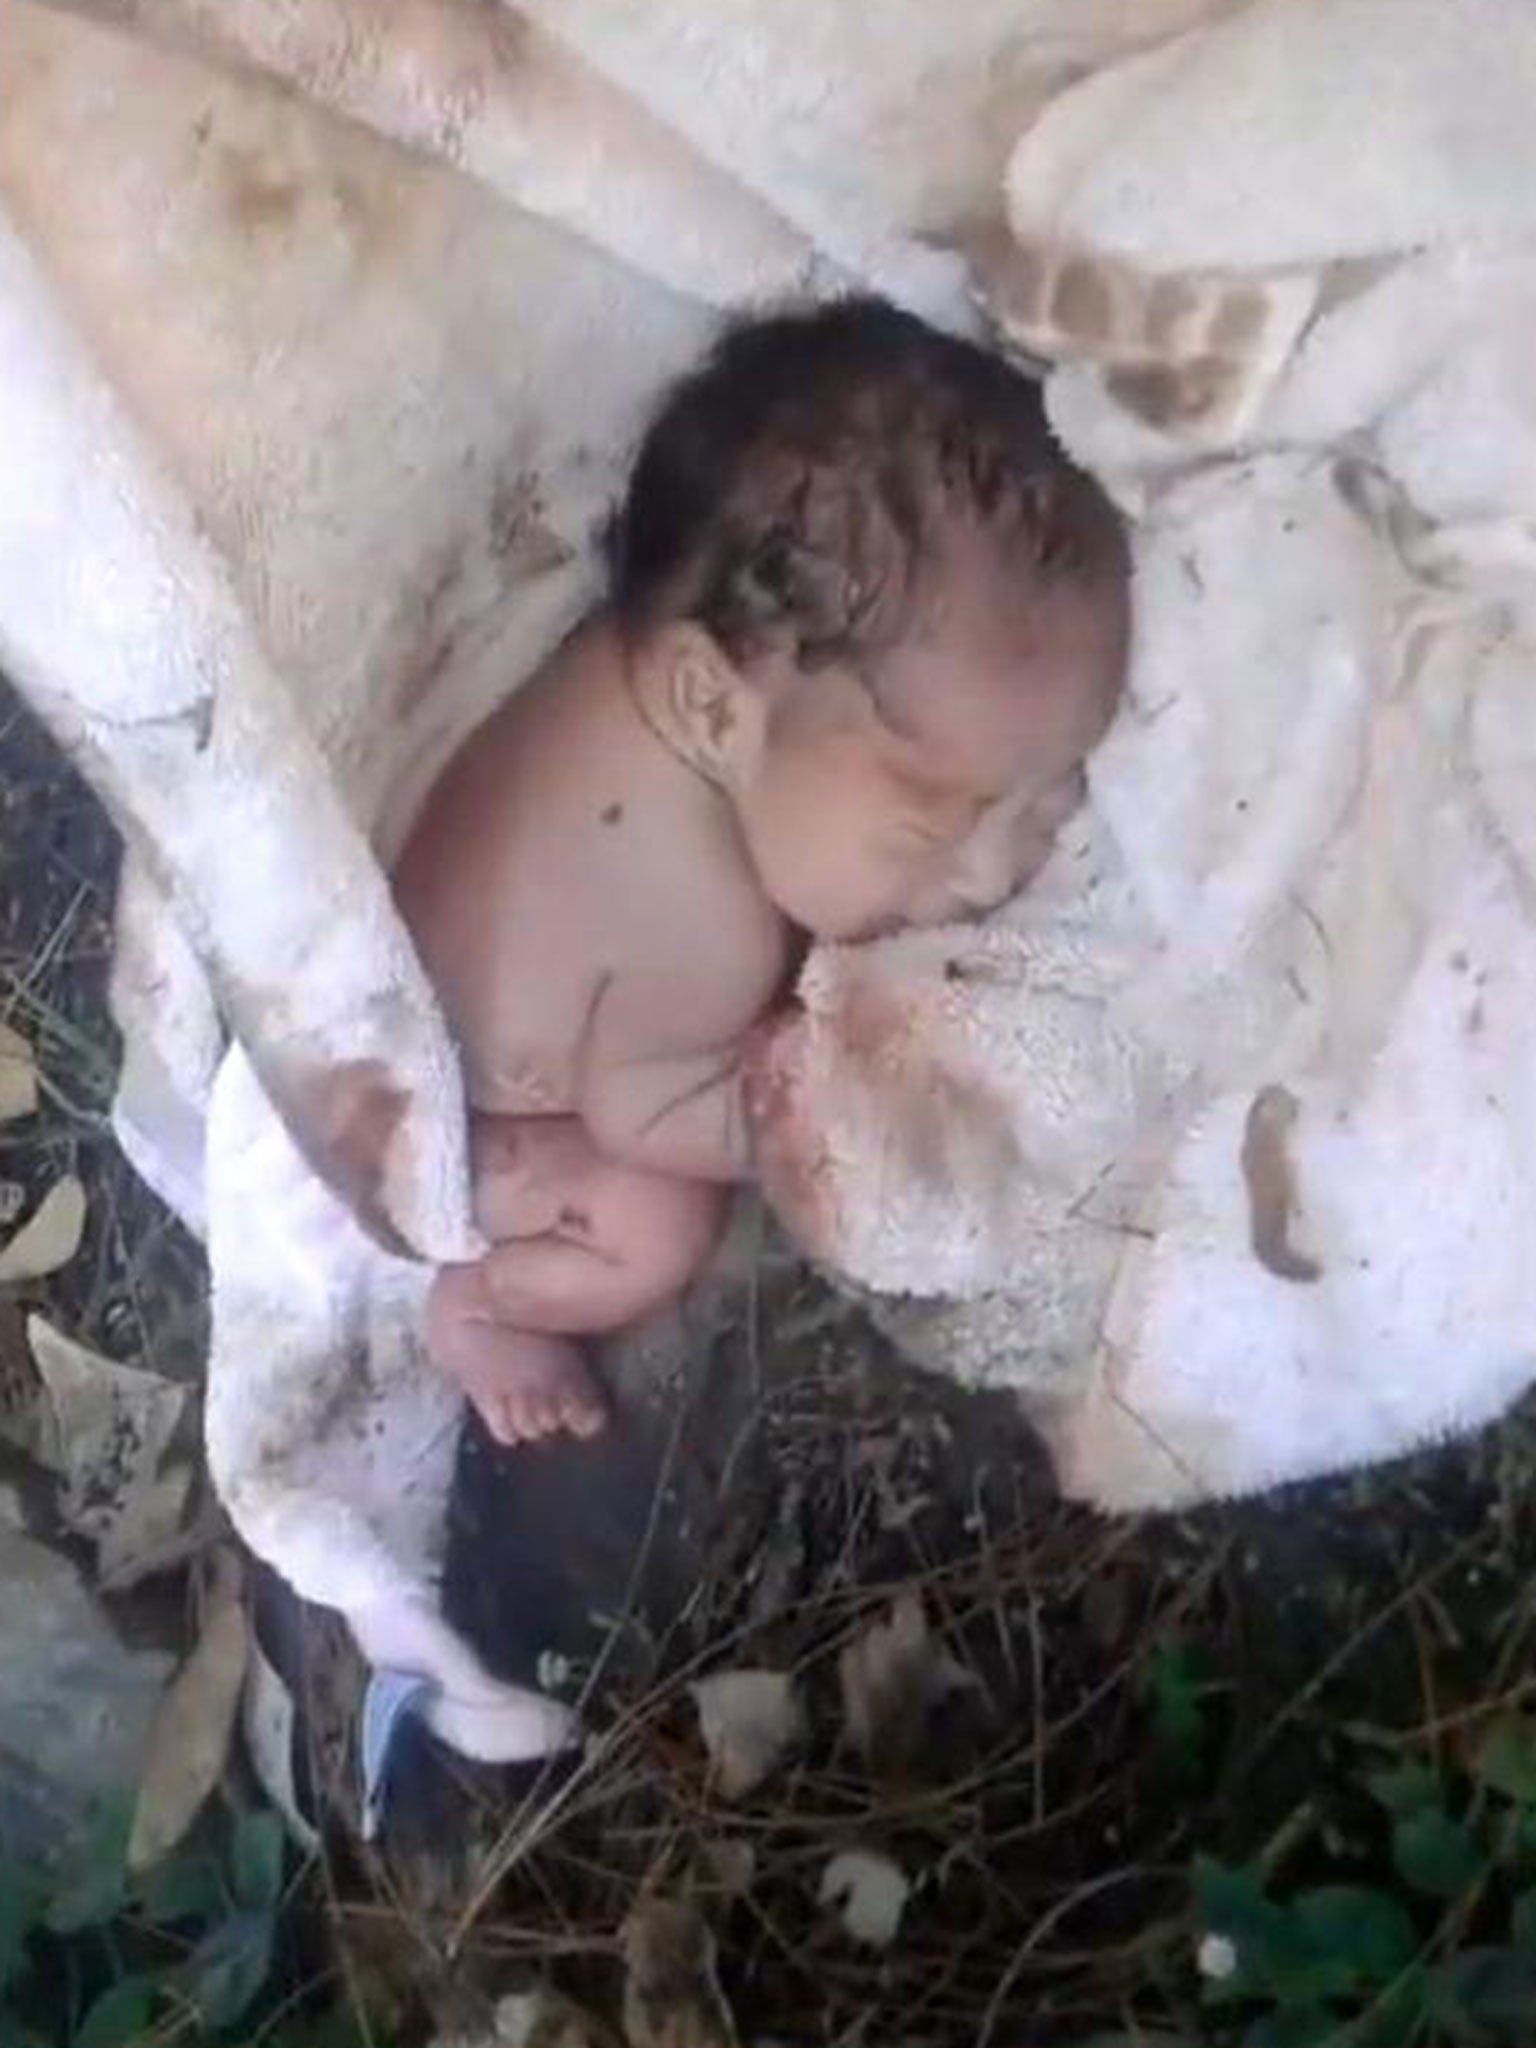 Man Plans To Adopt Newborn Baby Girl He Found Abandoned In The Dirt On His Way To Work The